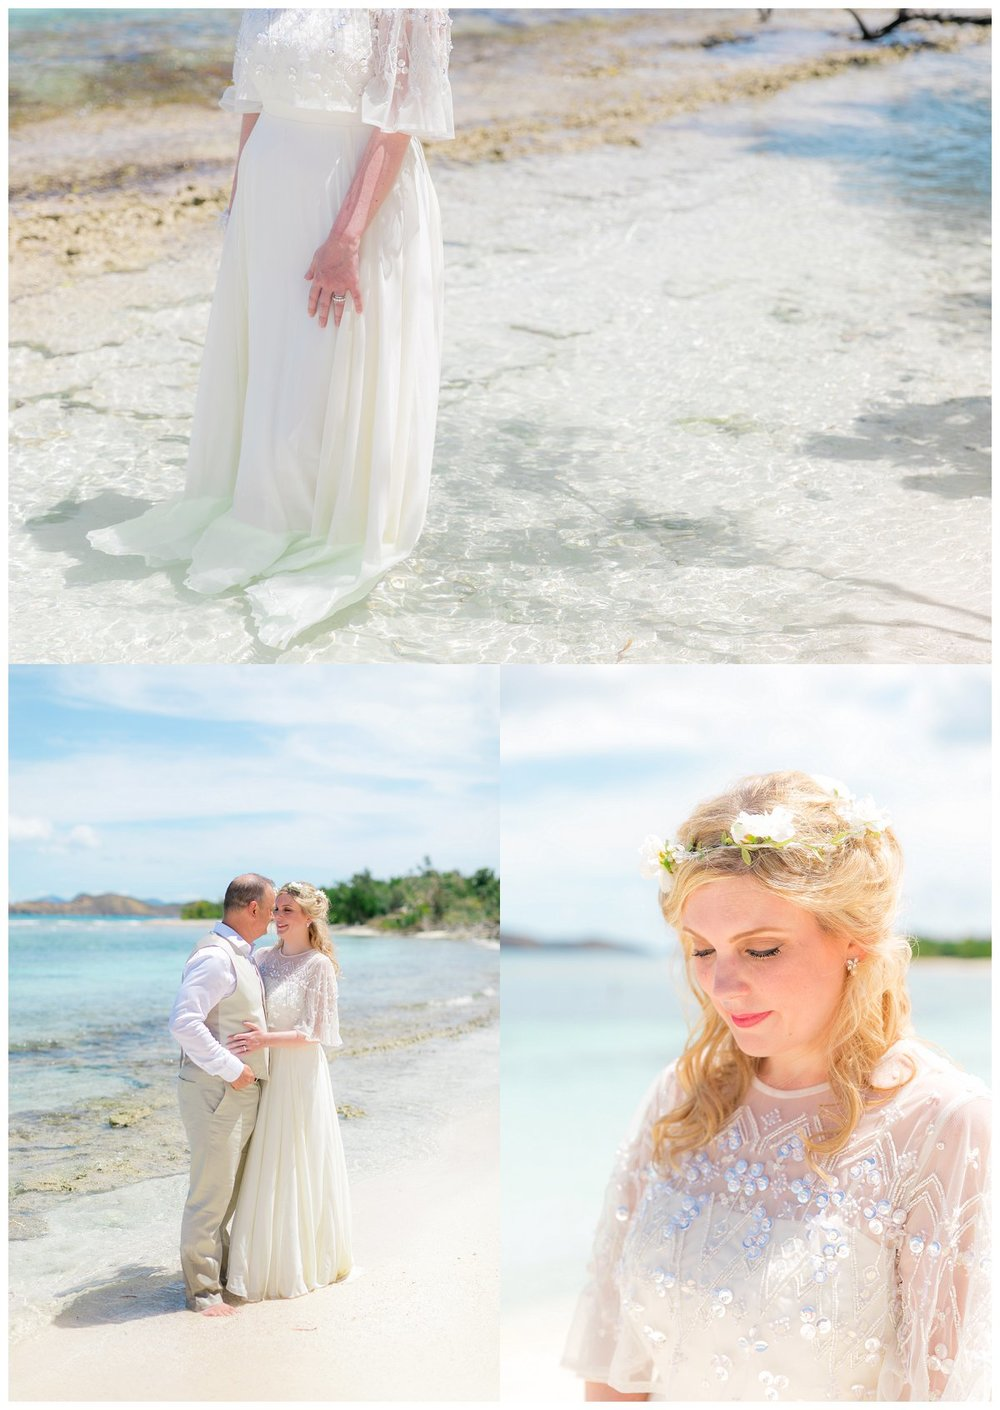 st-thomas-cruise-ship-wedding-inspiration